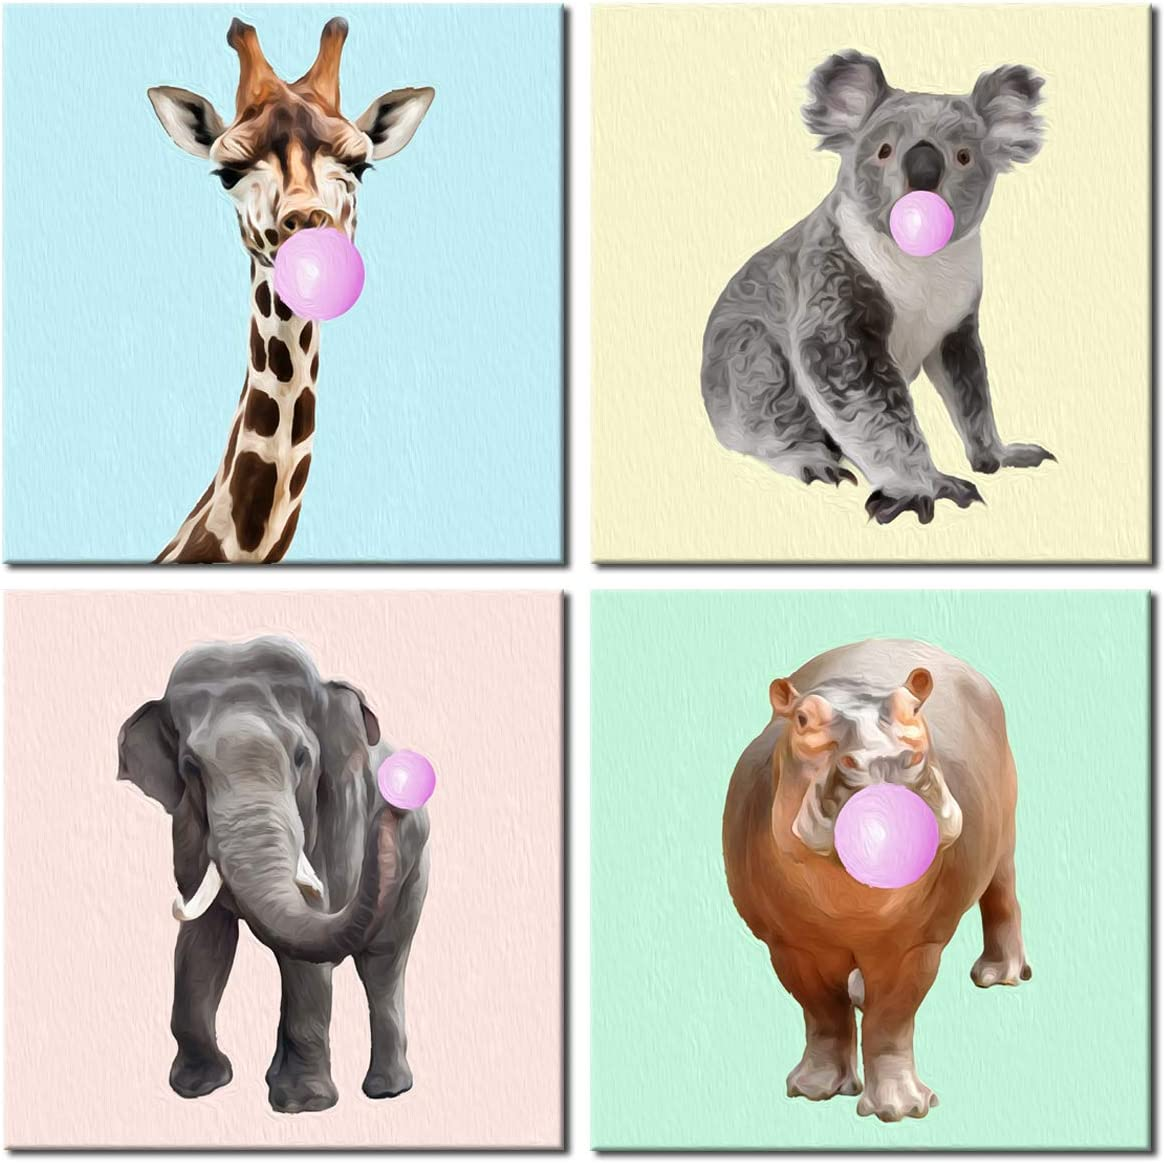 Animals Wall Art Deer Koala Elephant Hippo Pink Bubble Gum Cute Canvas Painting 4 Panels Print Picture Decor for Kids Room Framed Ready to Hang 12x12in x4pcs